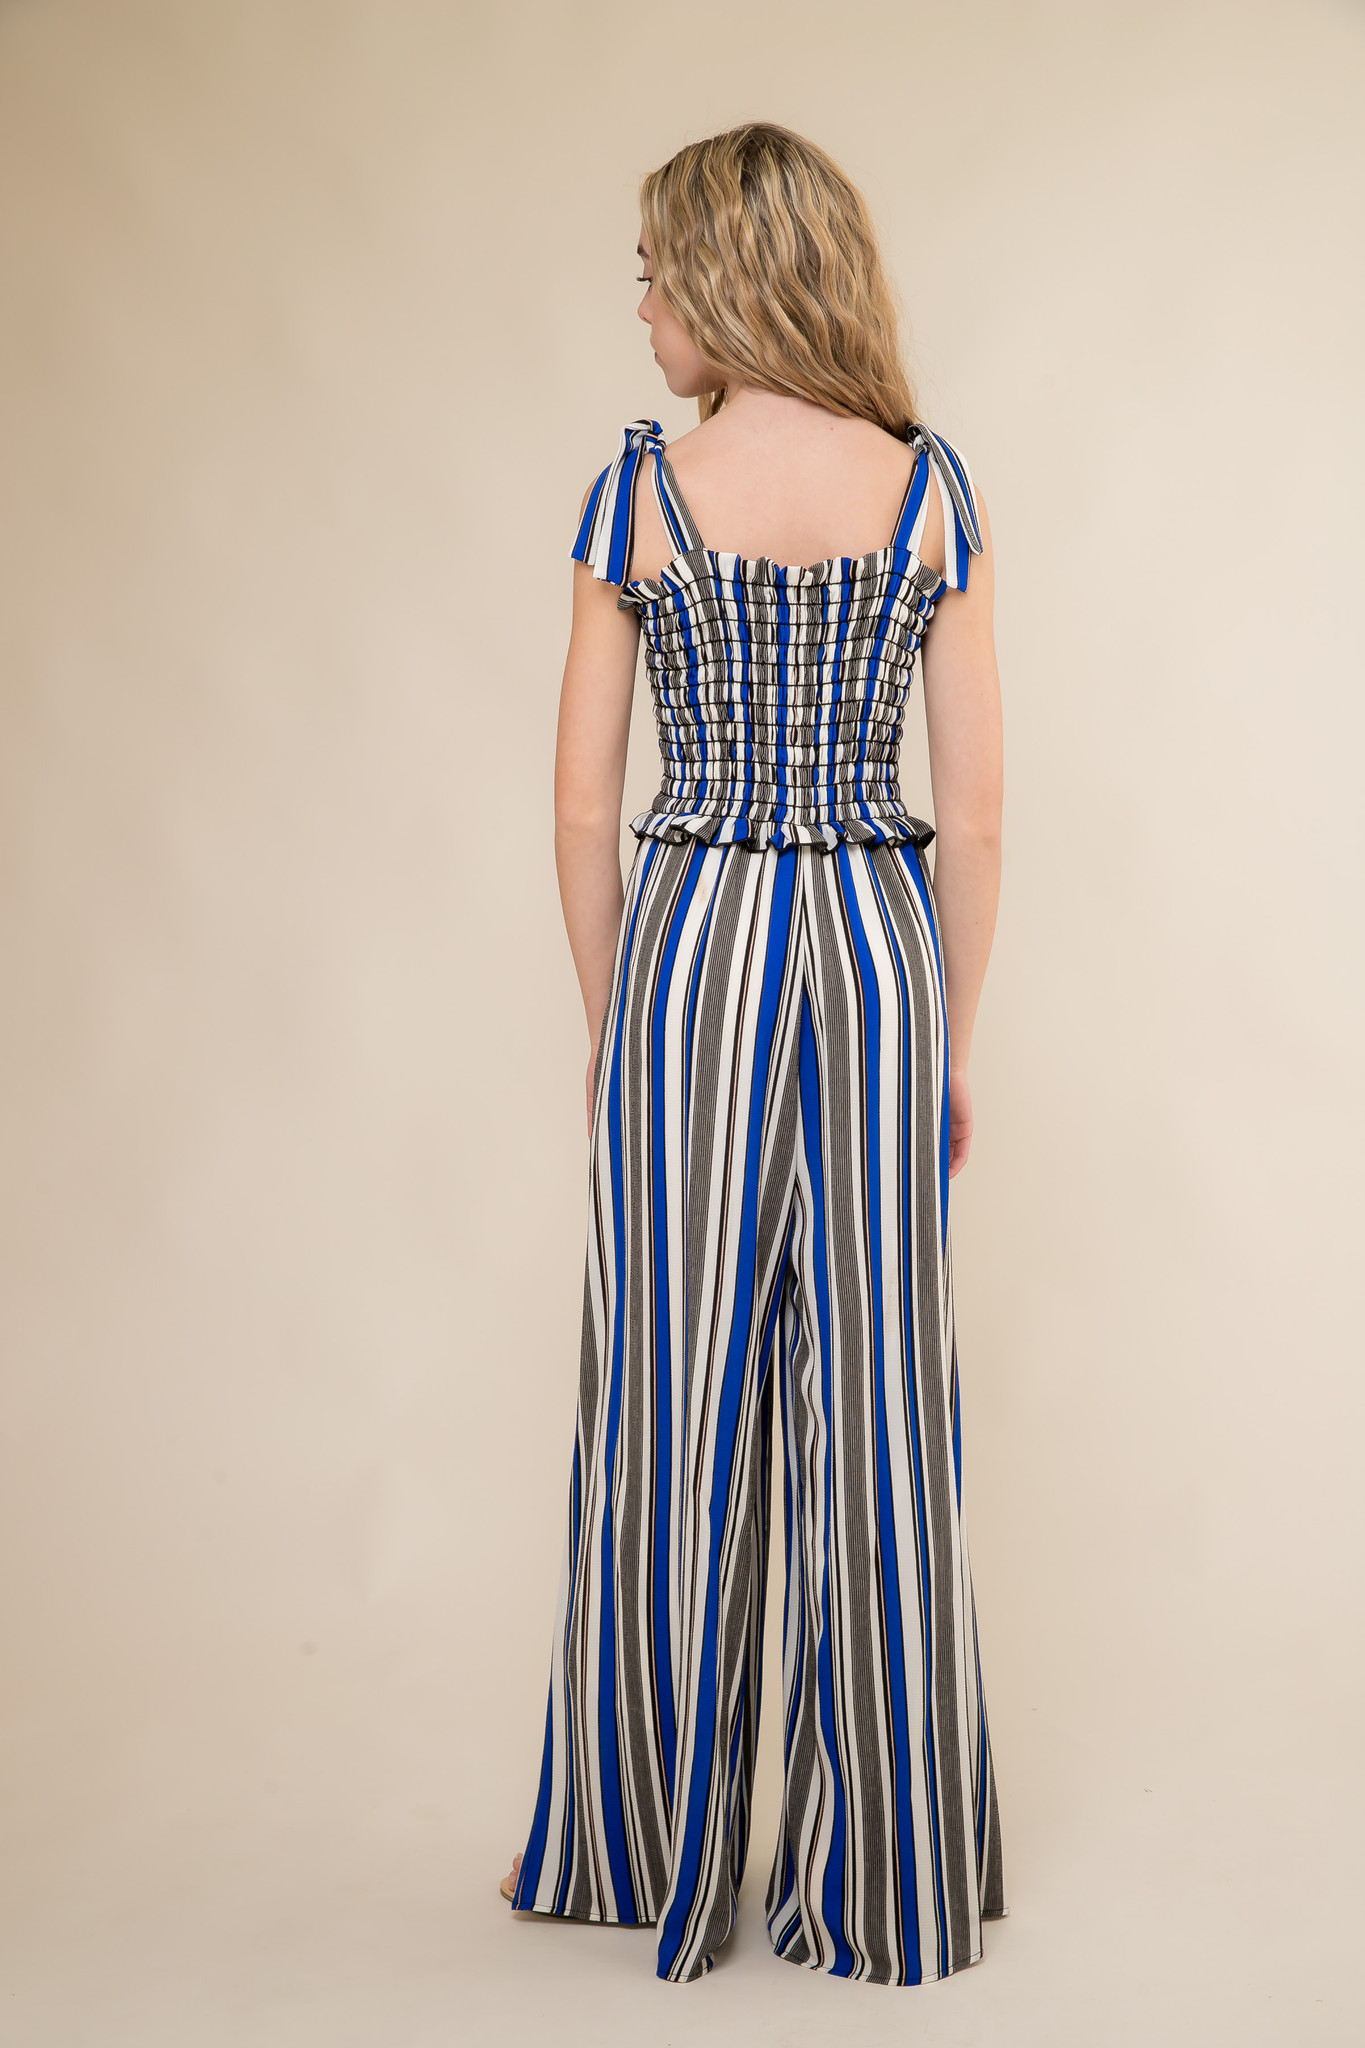 Stripe Smocked Jumpsuit with Knotted Straps back.